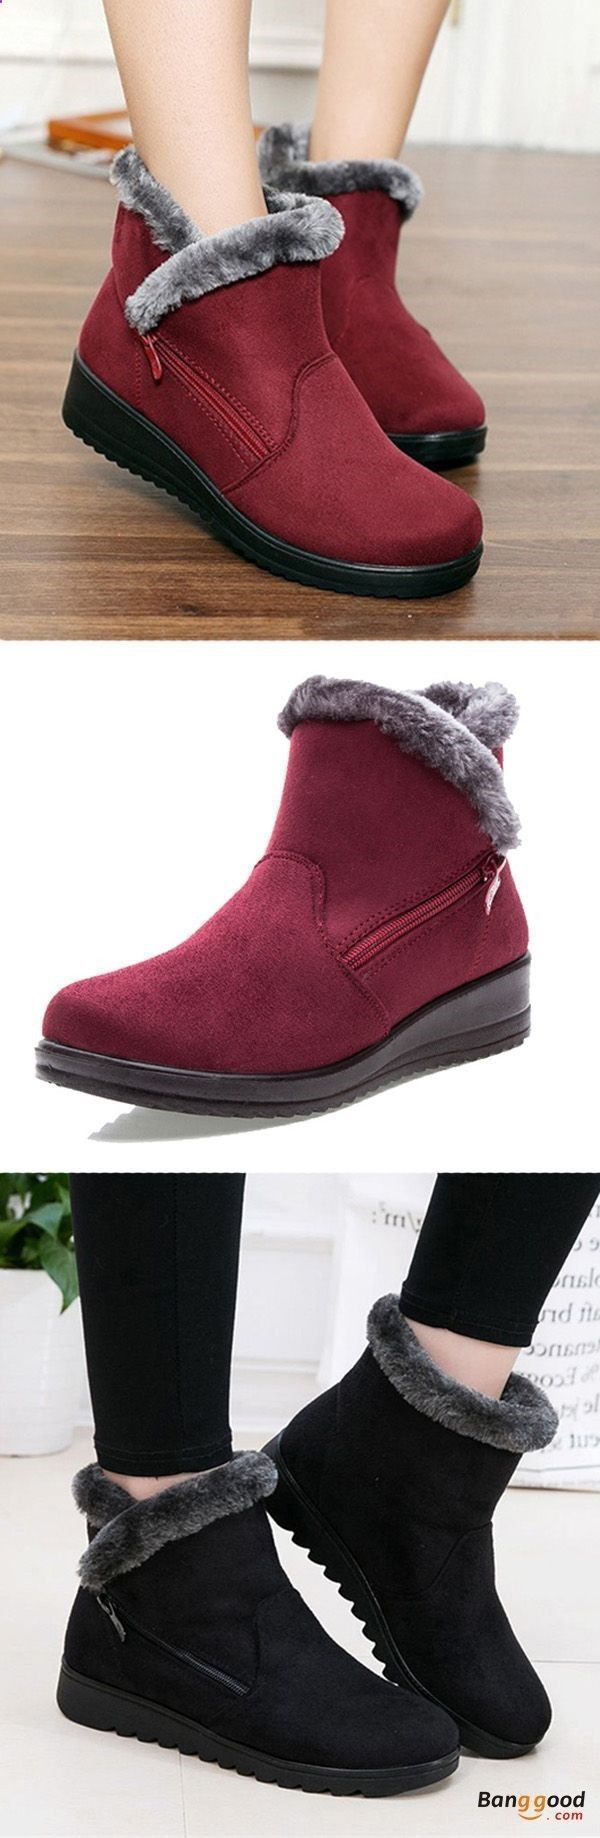 Fashion Trends Accesories - US$24.75   Free shipping. New Large Size Women Winter Boots Round Toe Ankle Short Snow Boots. Snow Boots for fall-winter, Womens shoe boots, casual boots, winter style, fall winter shoes for women. Color: Black, Brown, Red. Get the look! The signing of jewelry and jewelry Uno de 50 presents its new fashion and accessories trend for autumn/winter 2017. #bootsfall #womensboots